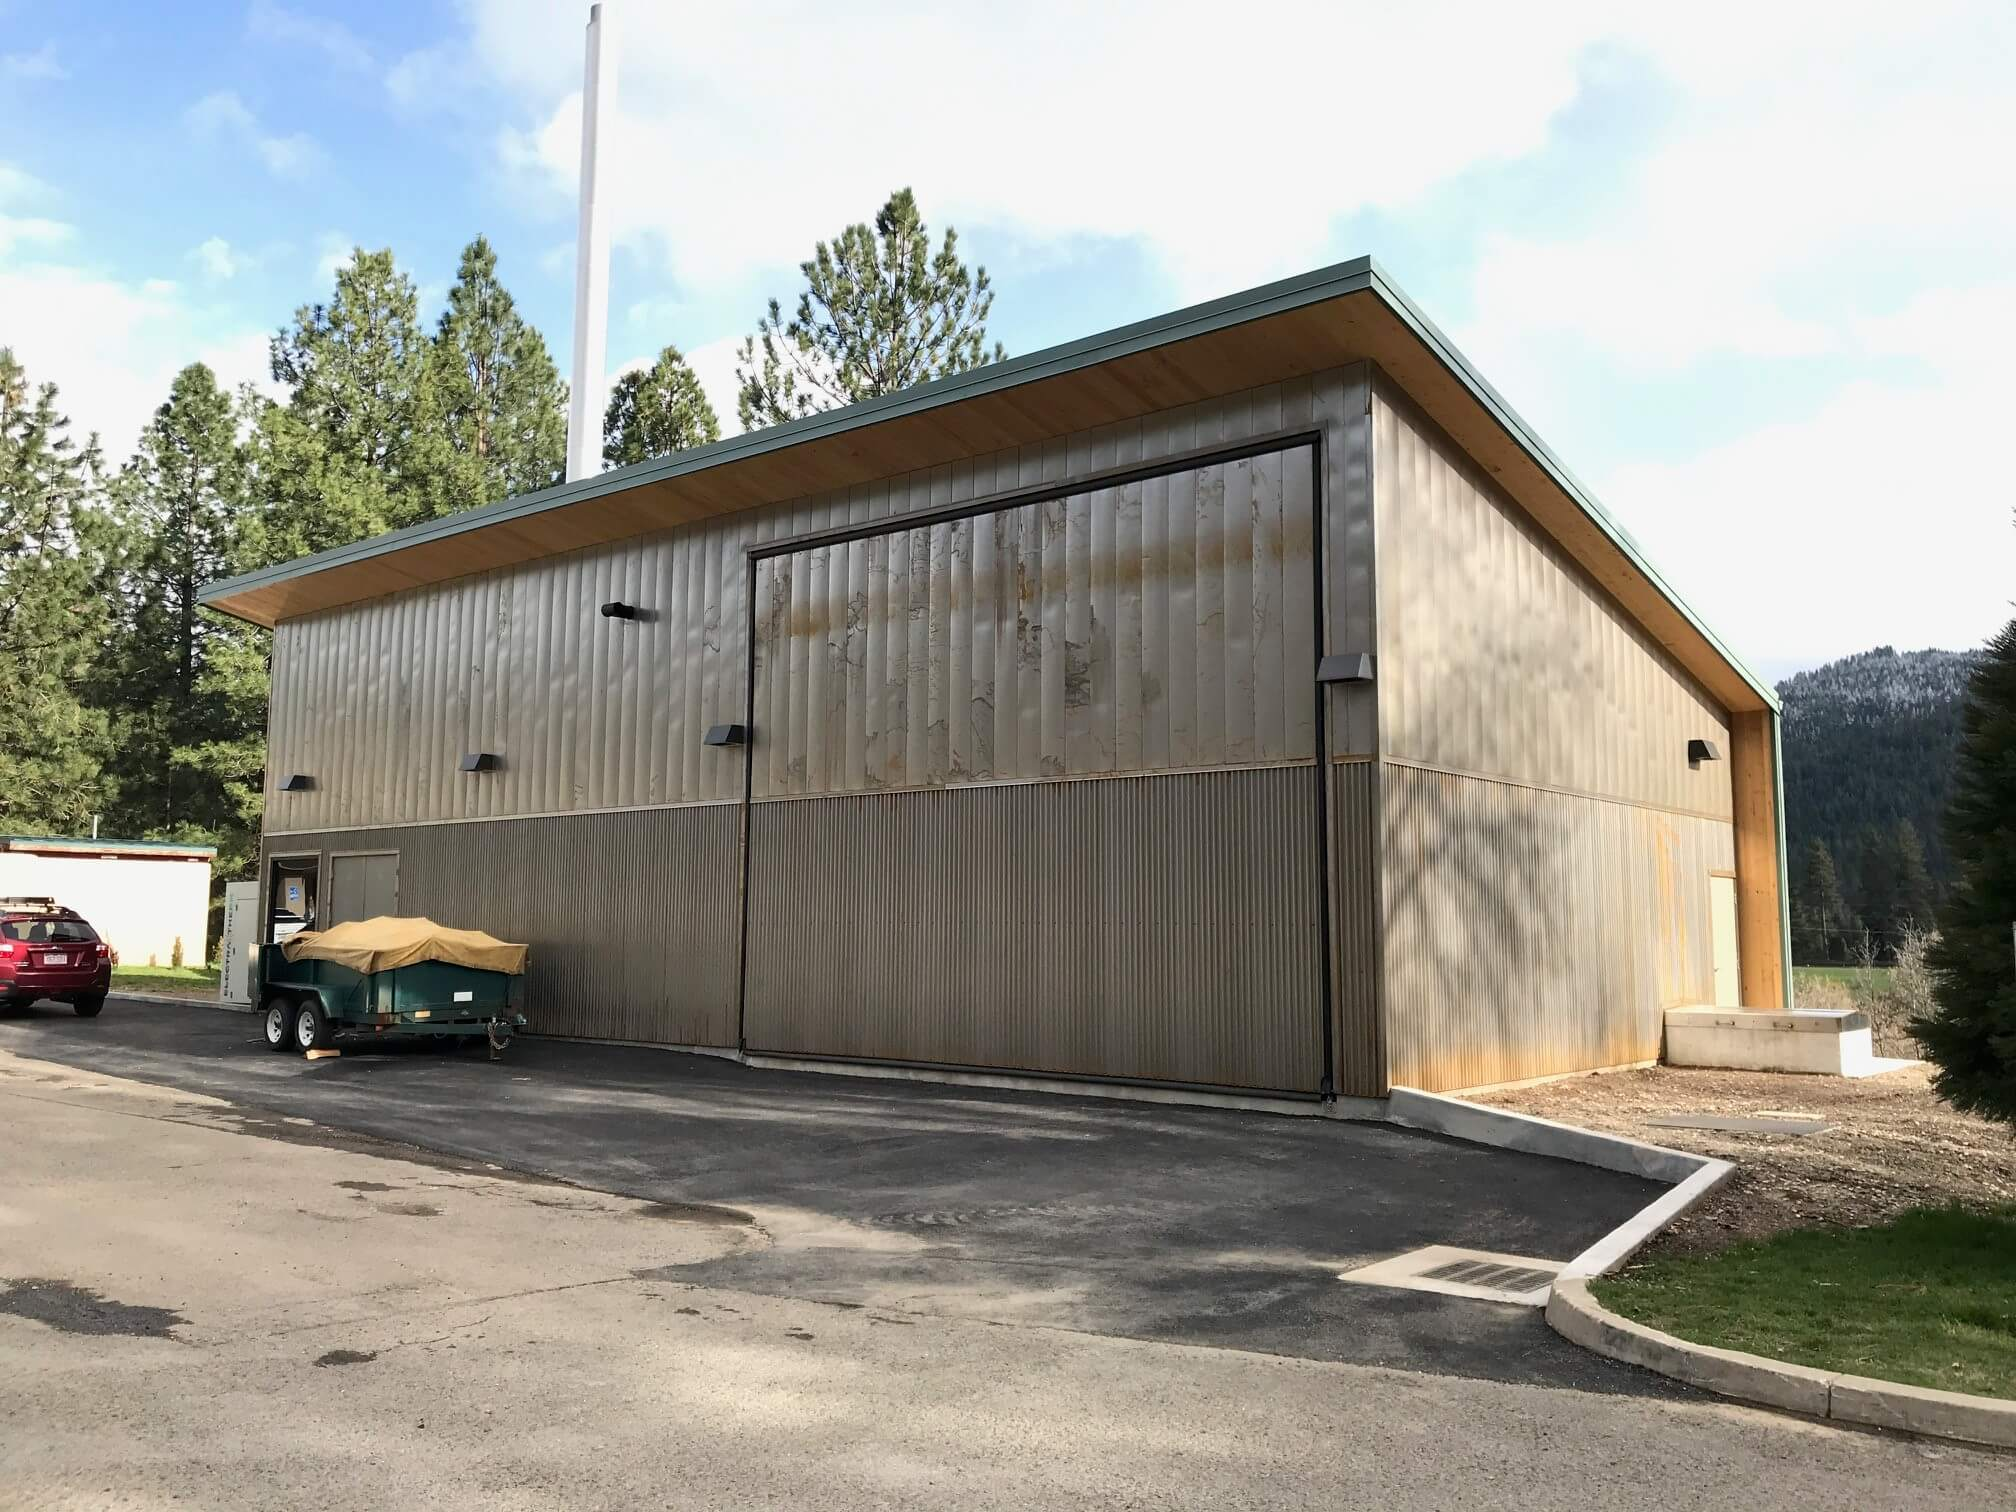 a simple wood building with metal siding